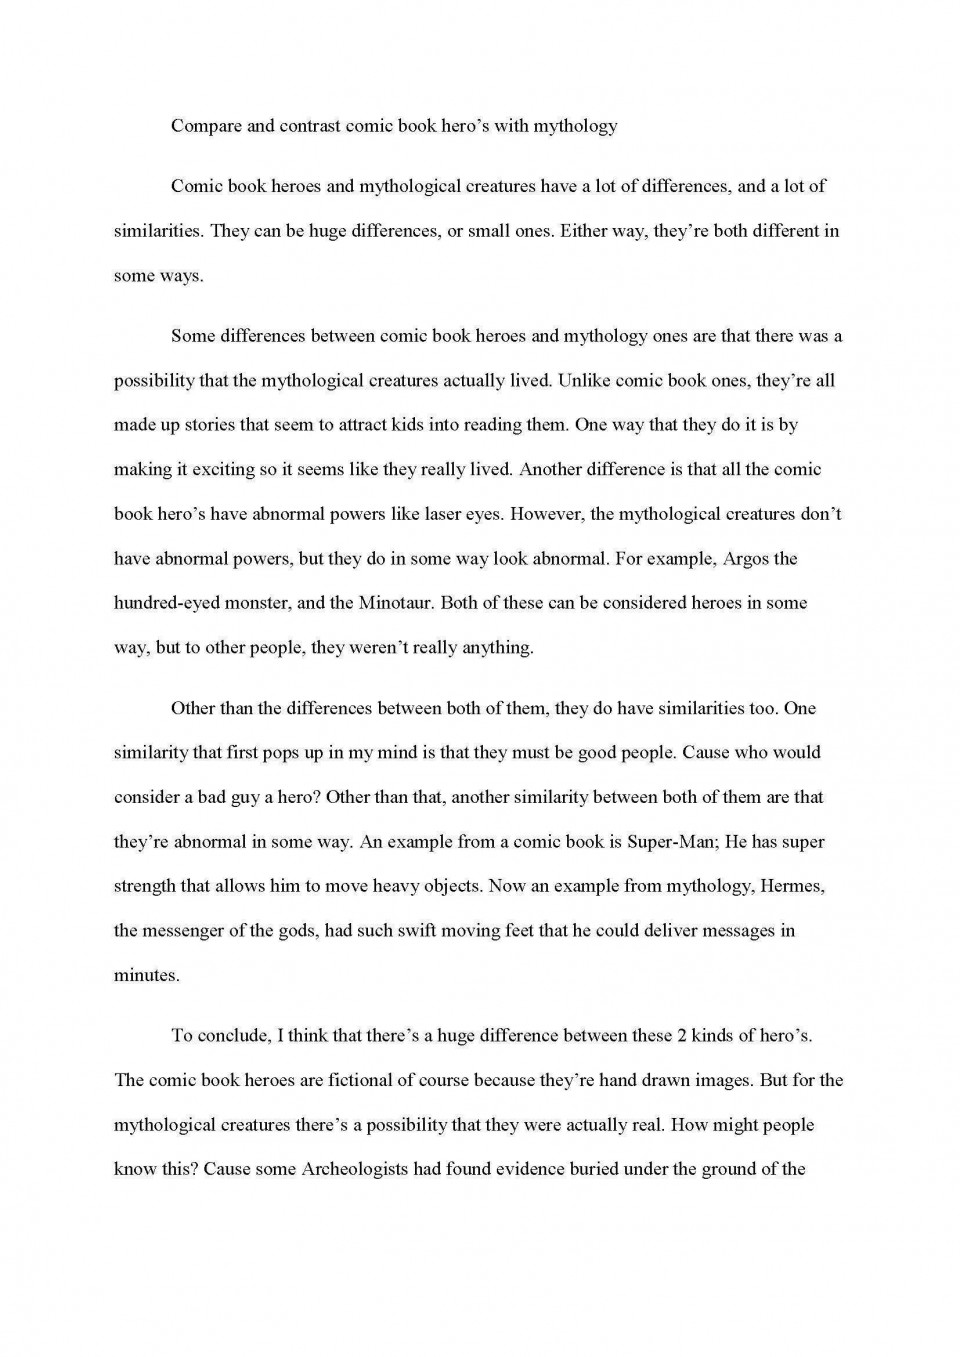 006 Excellent Compare And Contrast Essay Example College  For Topic Outline960